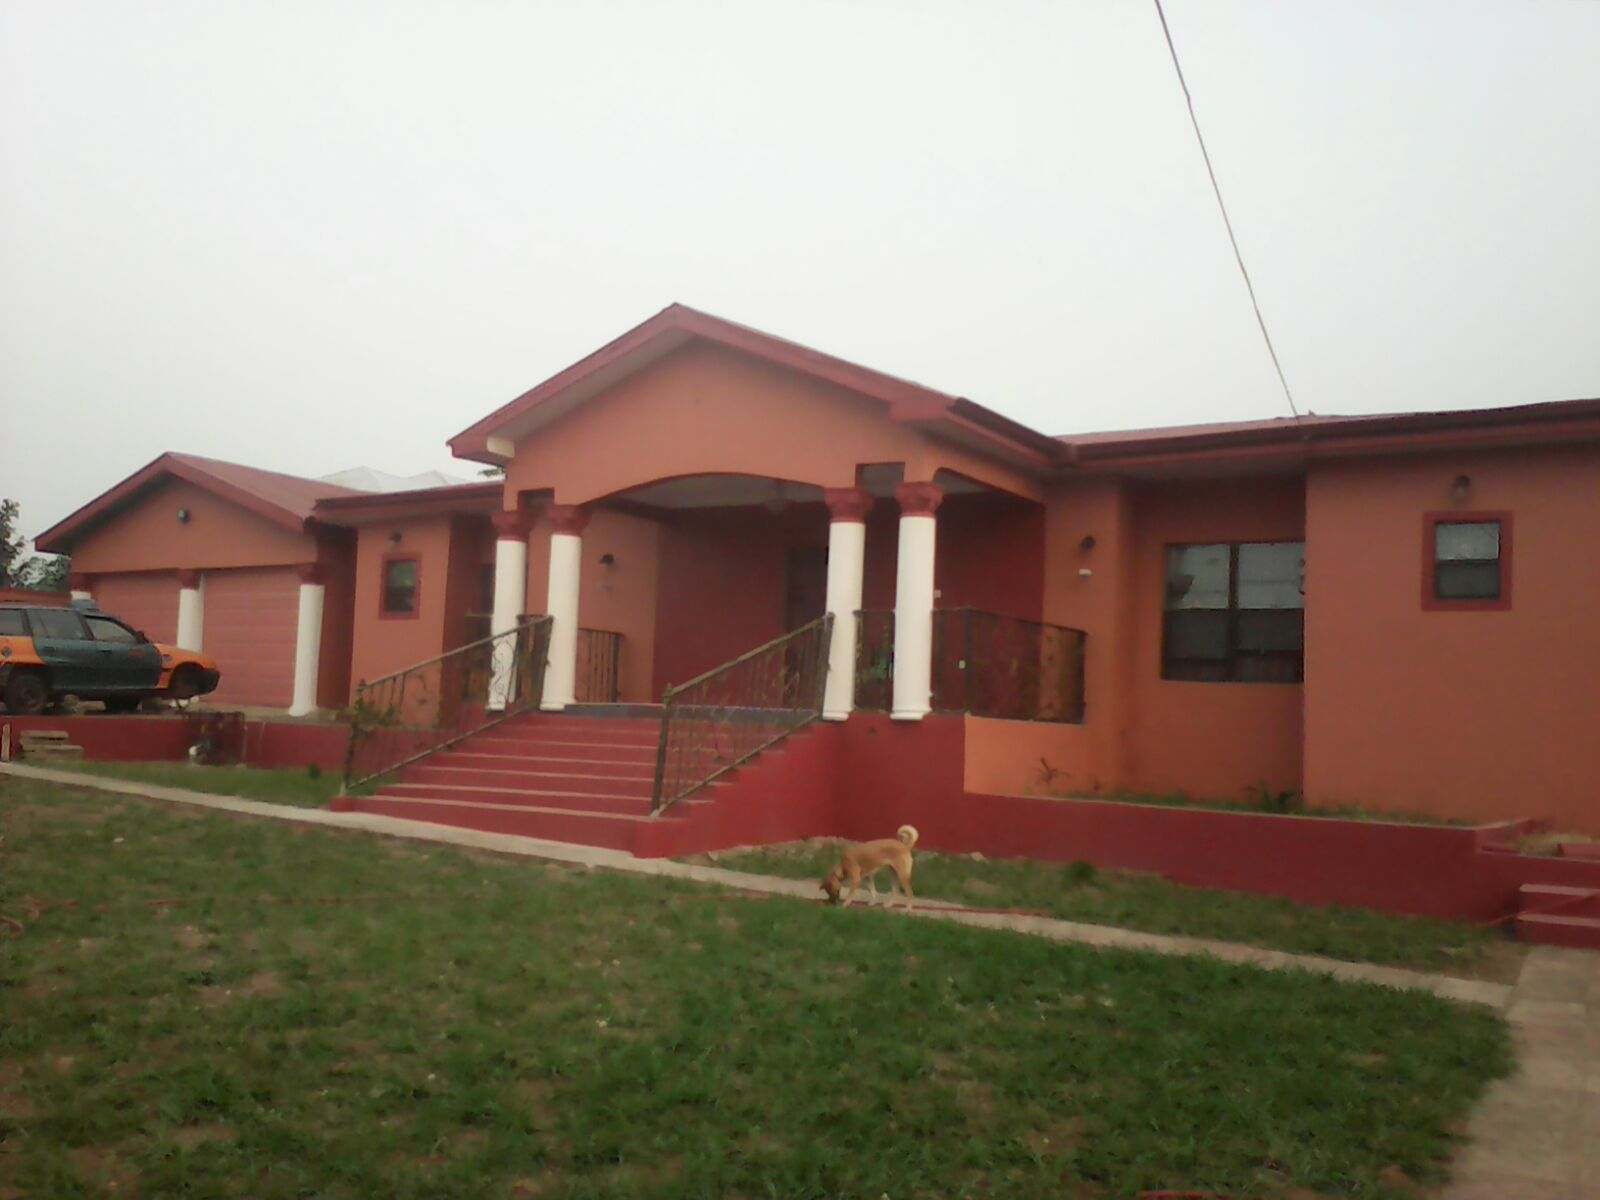 4 Bedrooms House for Sale in Kumasi